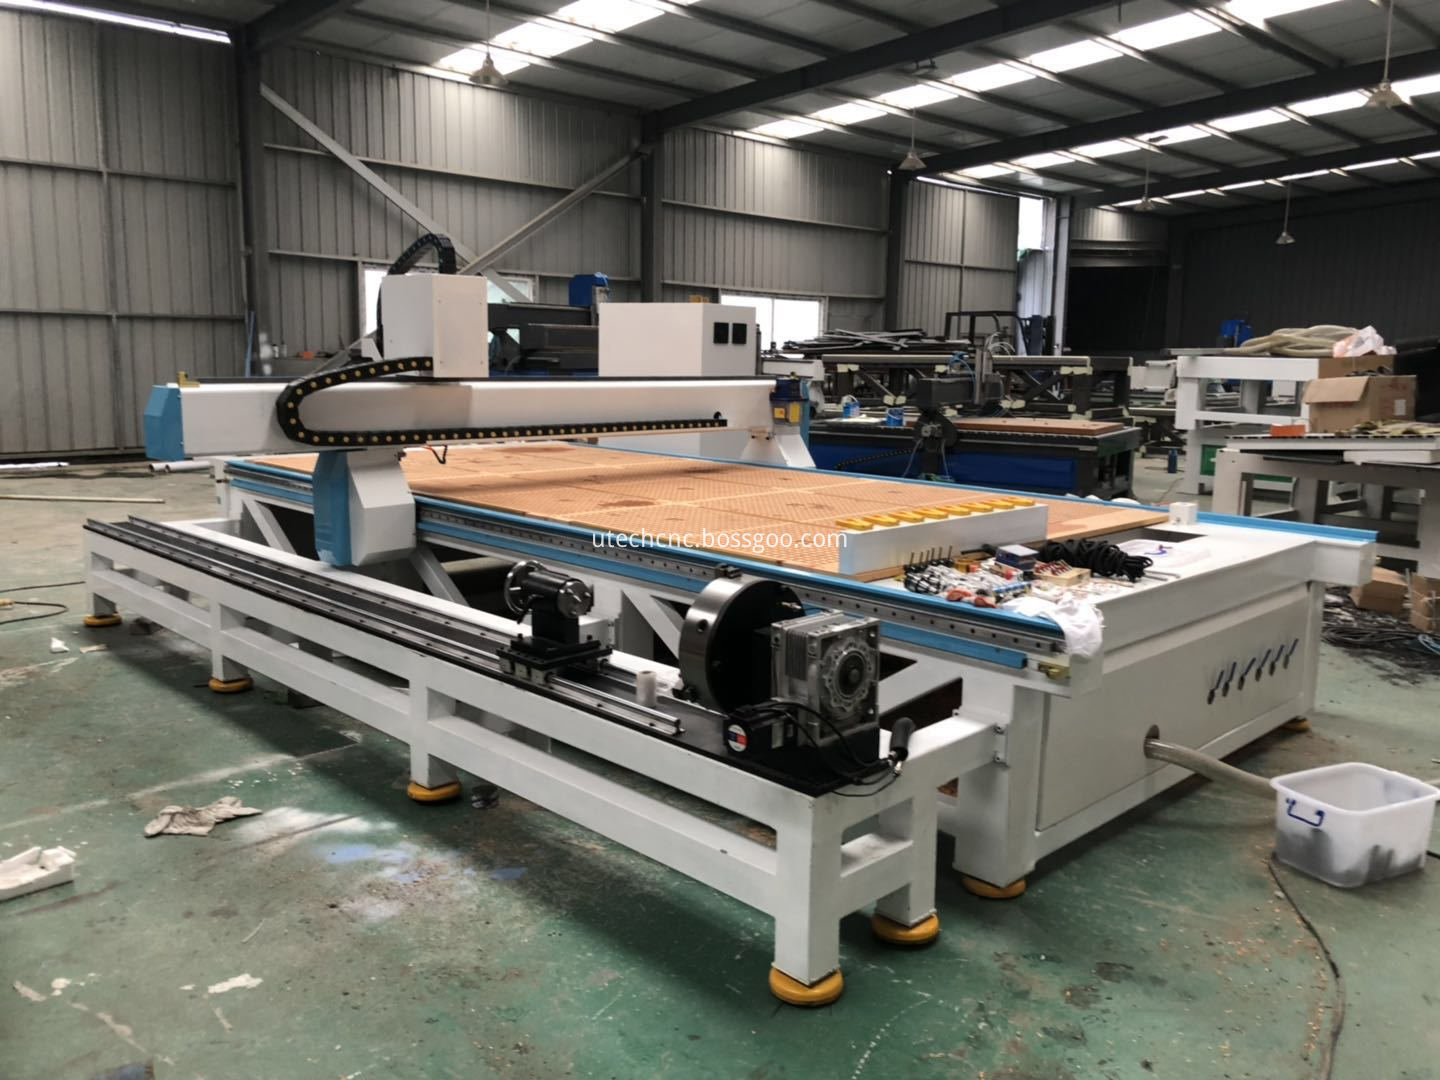 4th cnc router for round materials